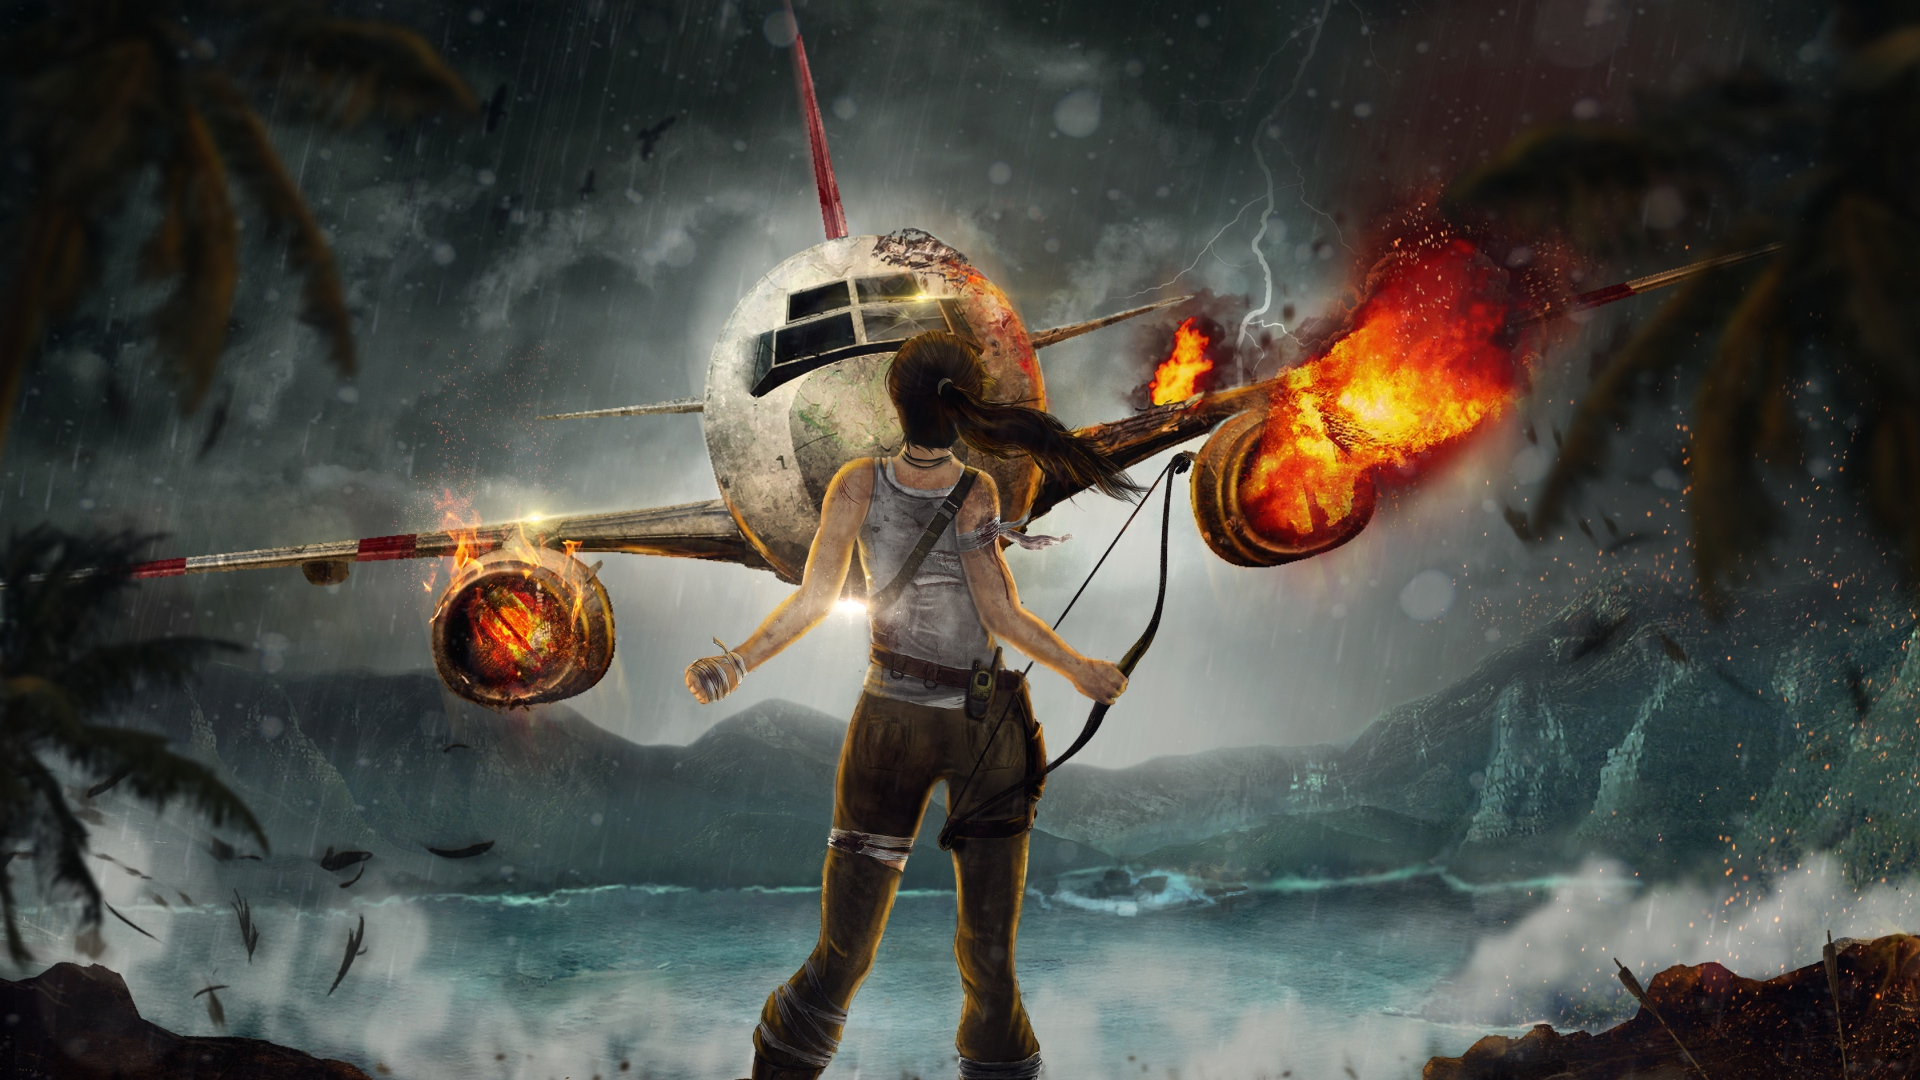 Fan-Art-Tomb-Raider-II-Unofficial-by-TombRaider-wallpaper-wpc5804704